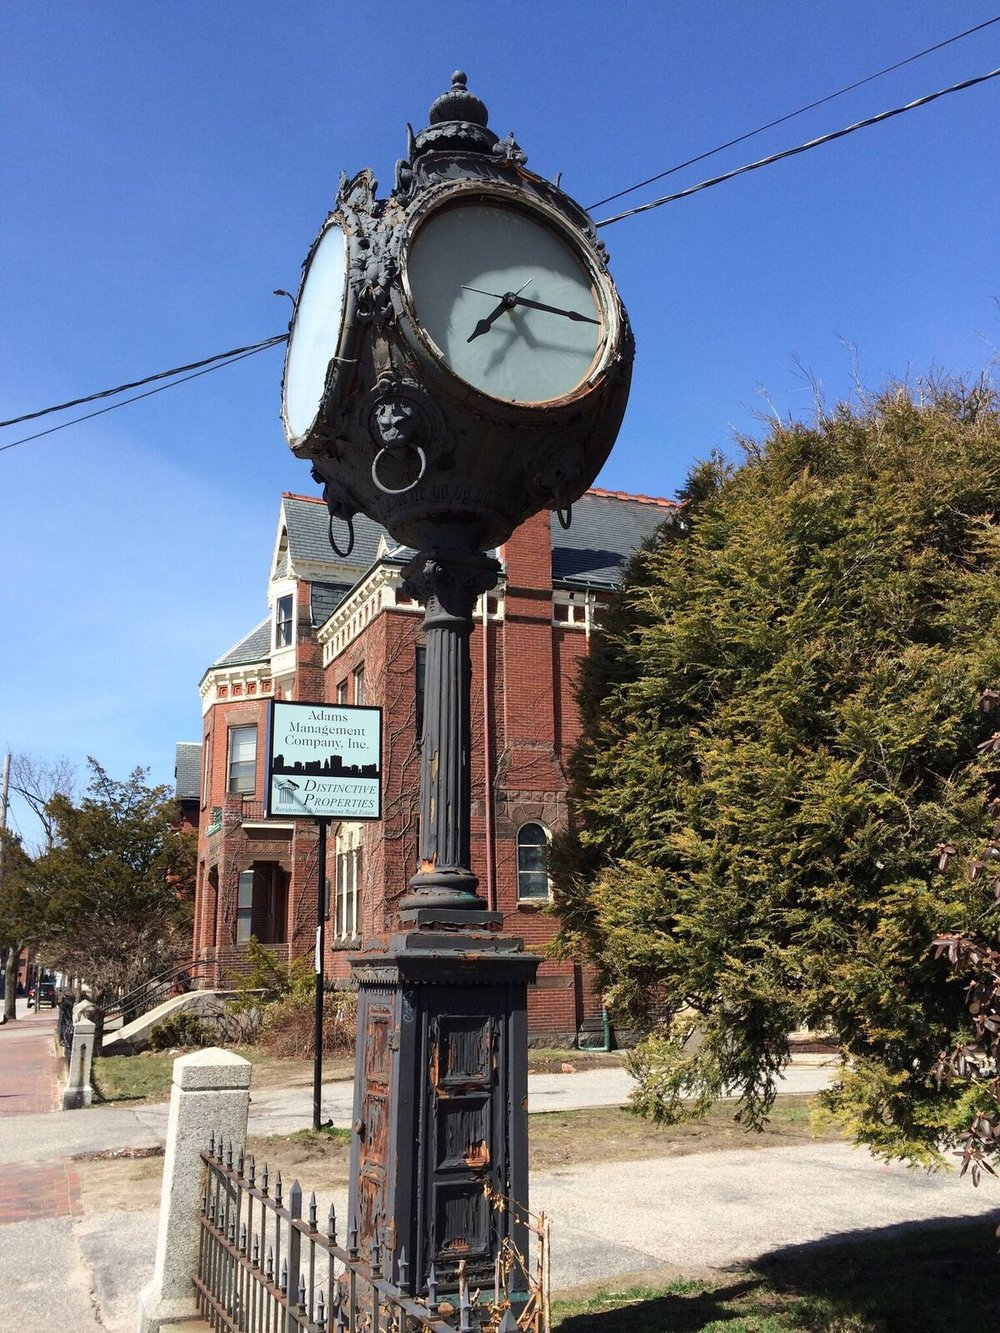 Hay & Peabody's Seth Thomas Clock